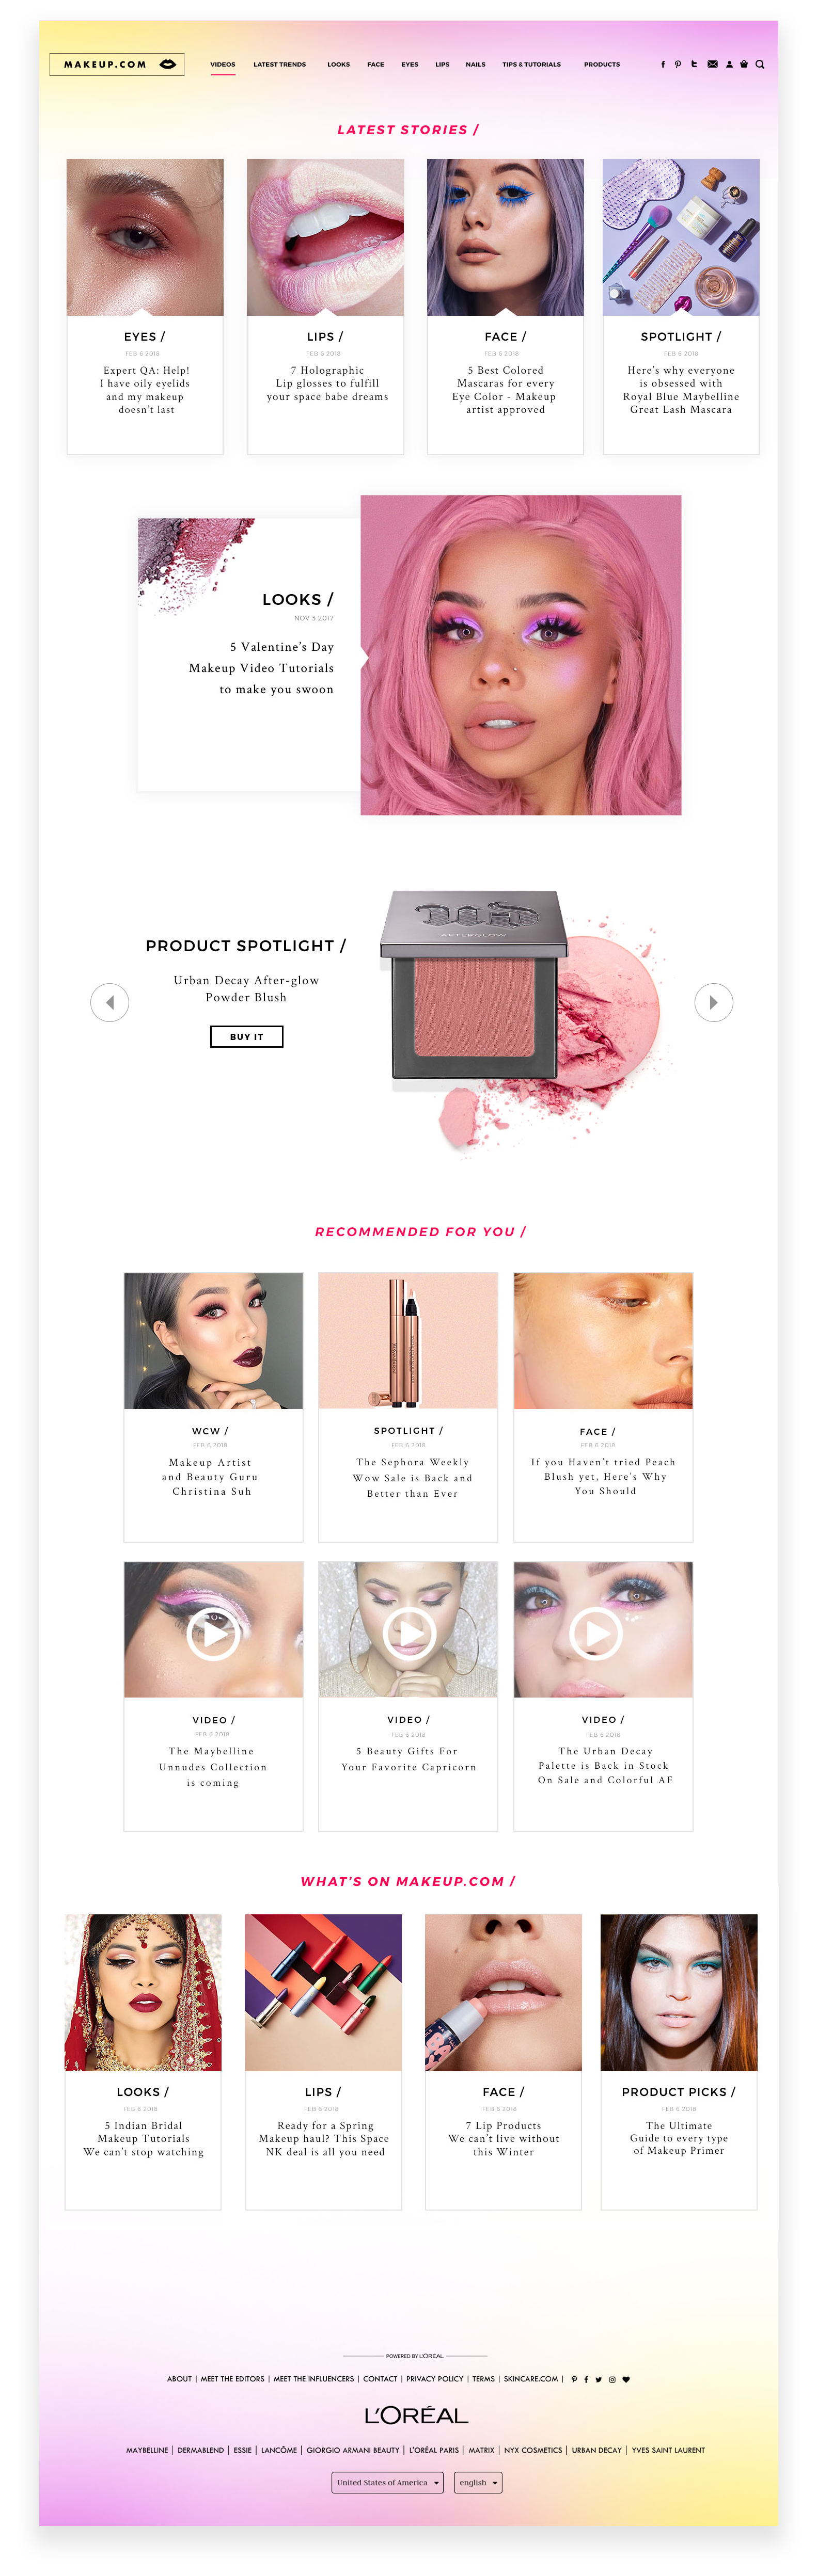 makeup.com_ABtest_HP_desktop_V4Artboard-1.png